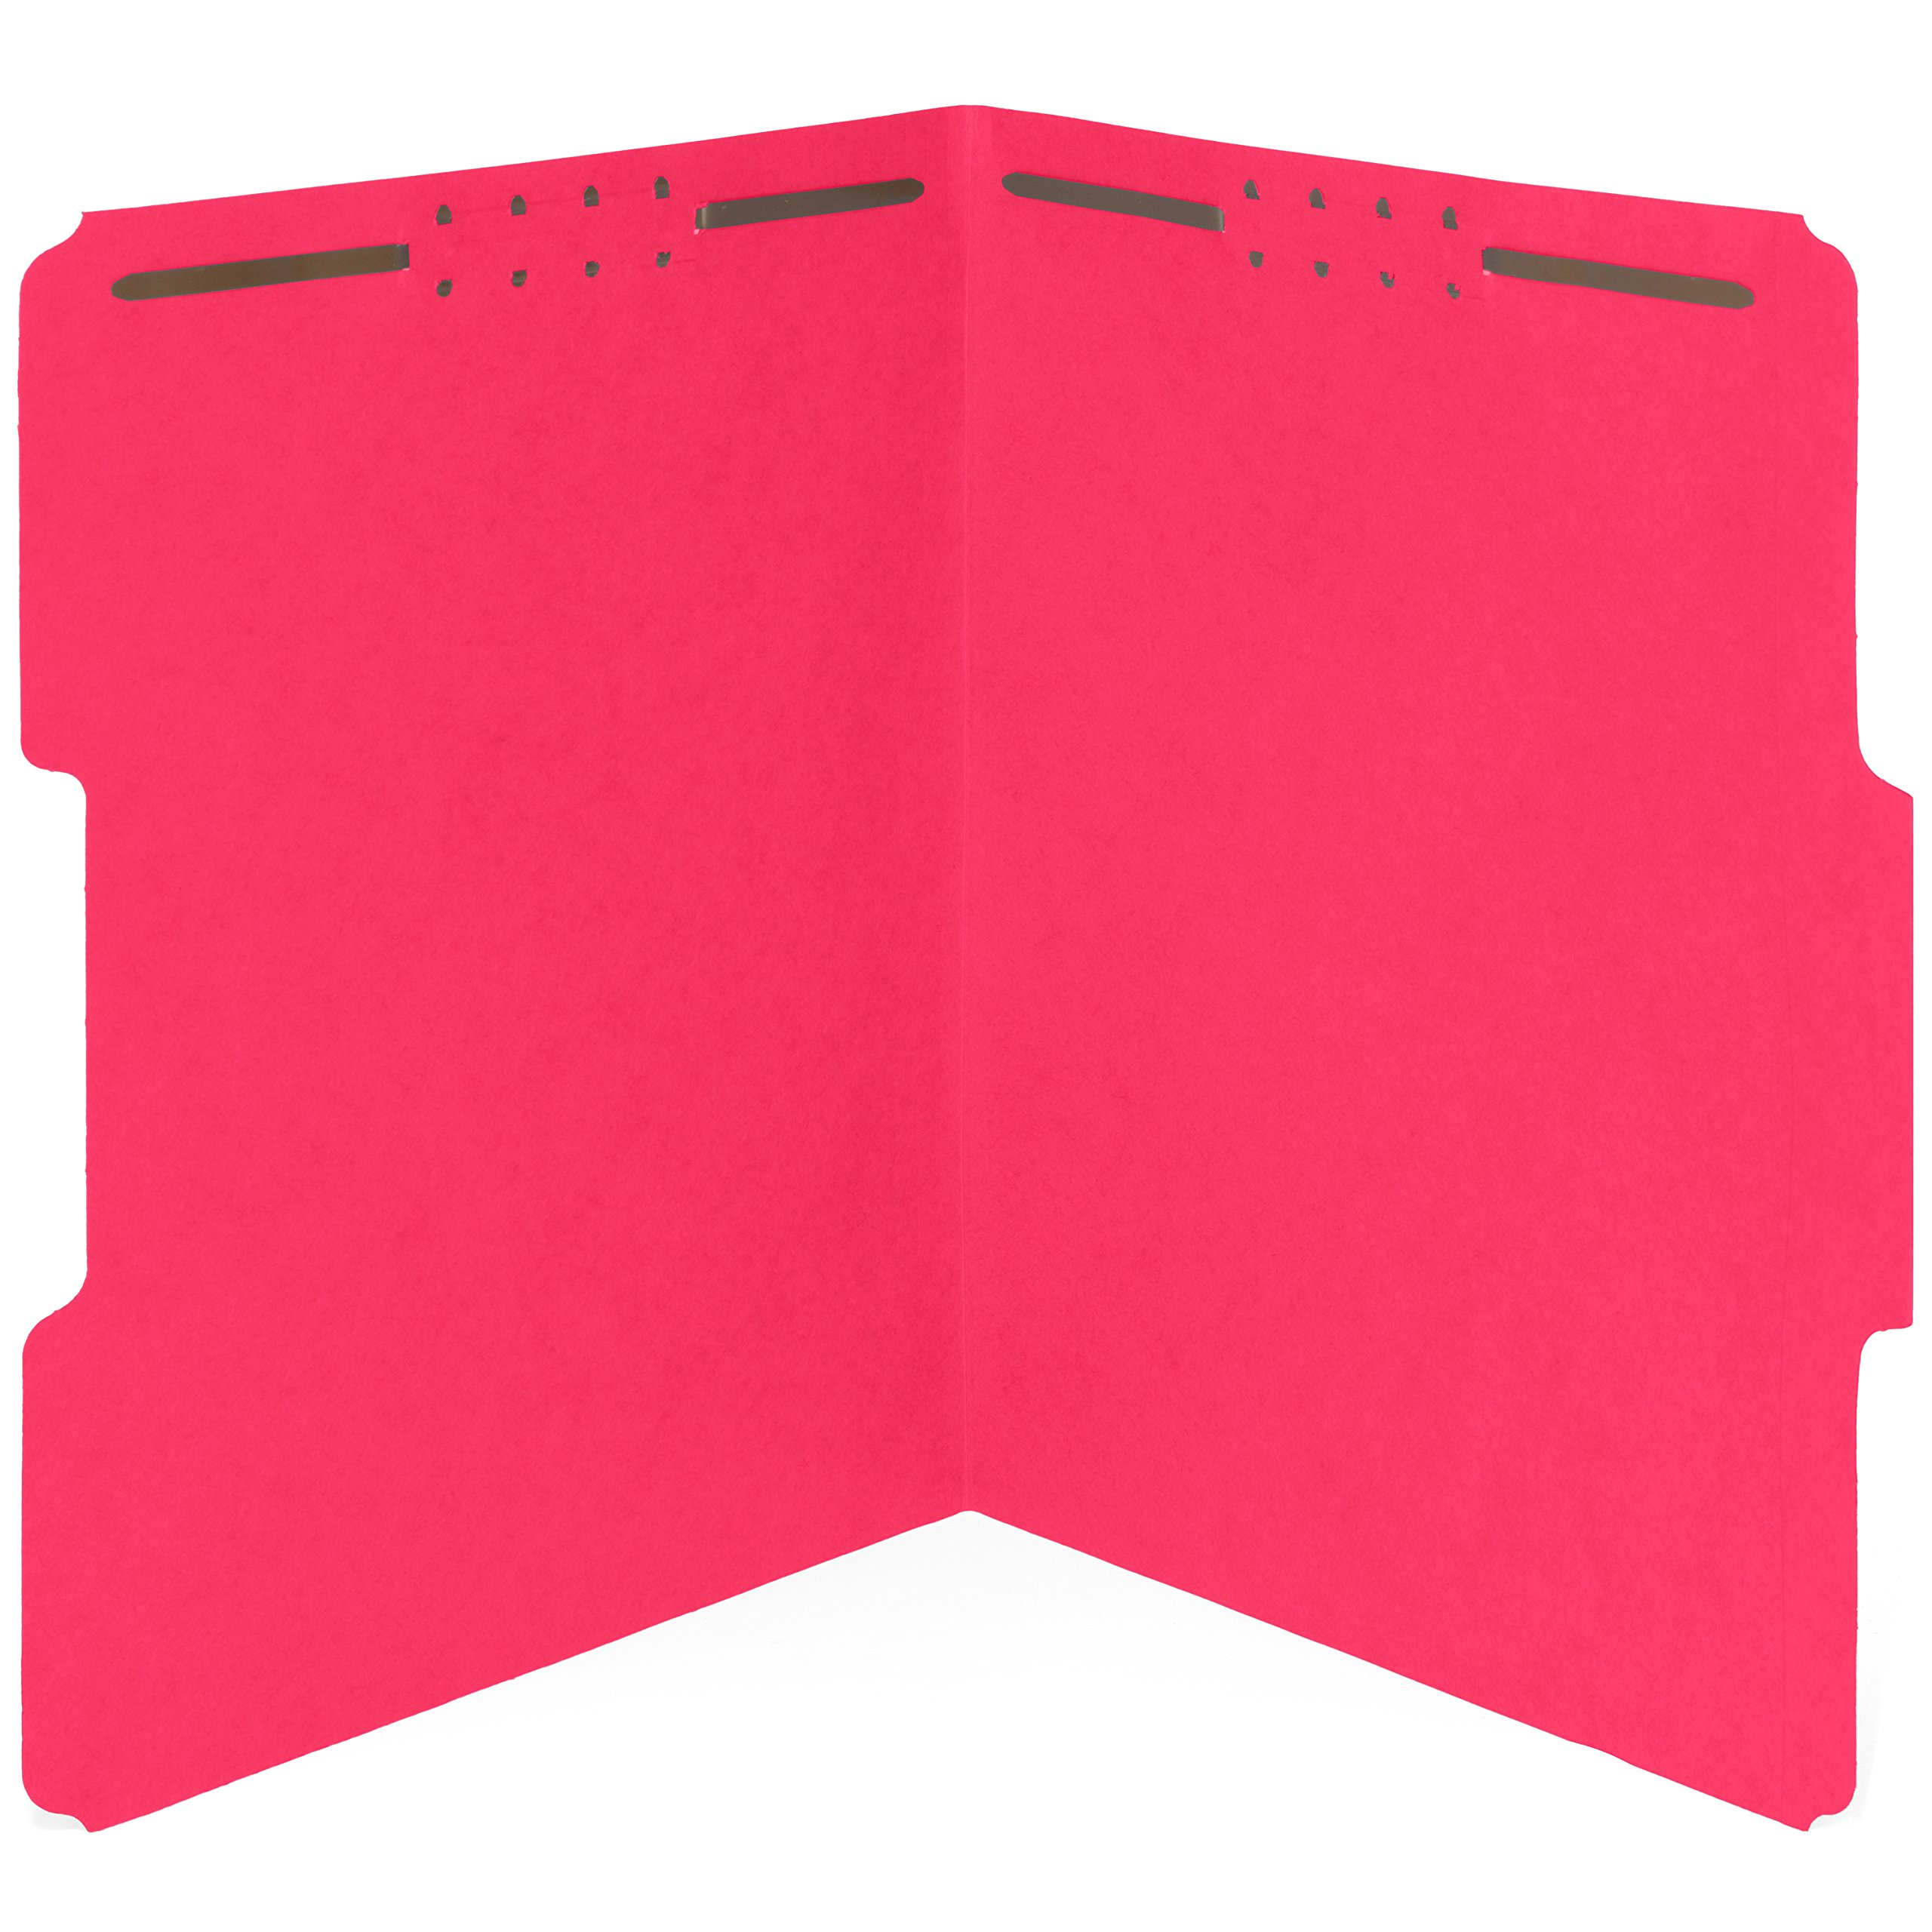 50 Red Fastener File Folders- 1/3 Cut Reinforced tab- Durable 2 Prongs designed to organize standard medical files, law client files, office reports– Letter Size, Red, 50 PACK